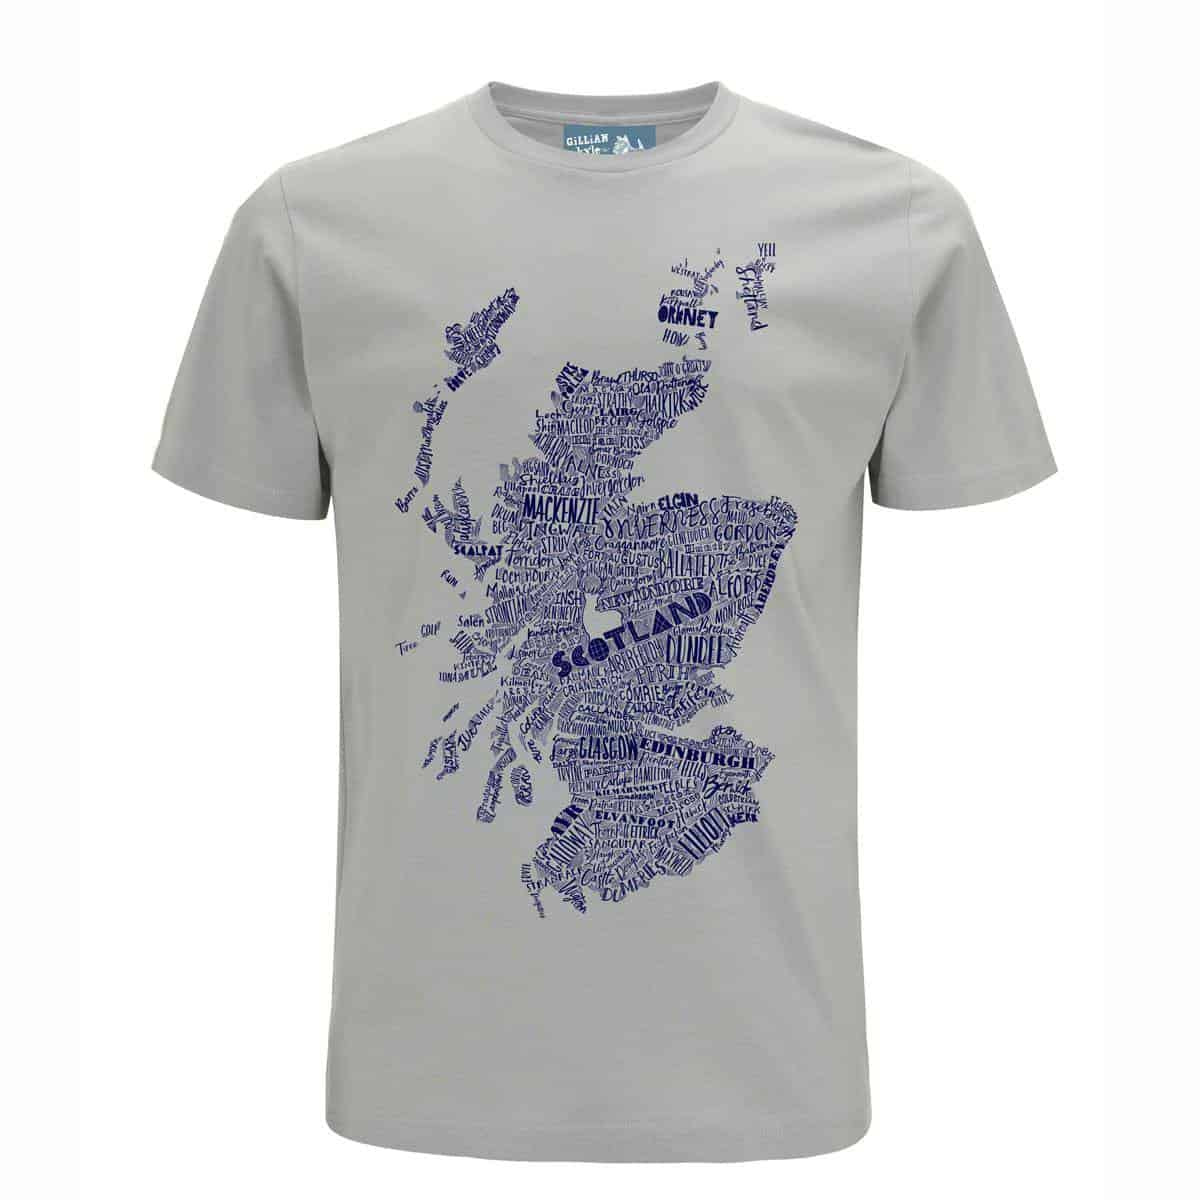 2d9cf4deb55ac Gillian Kyle Scottish Clothing Scotland Map Mens Tee Shirt Grey